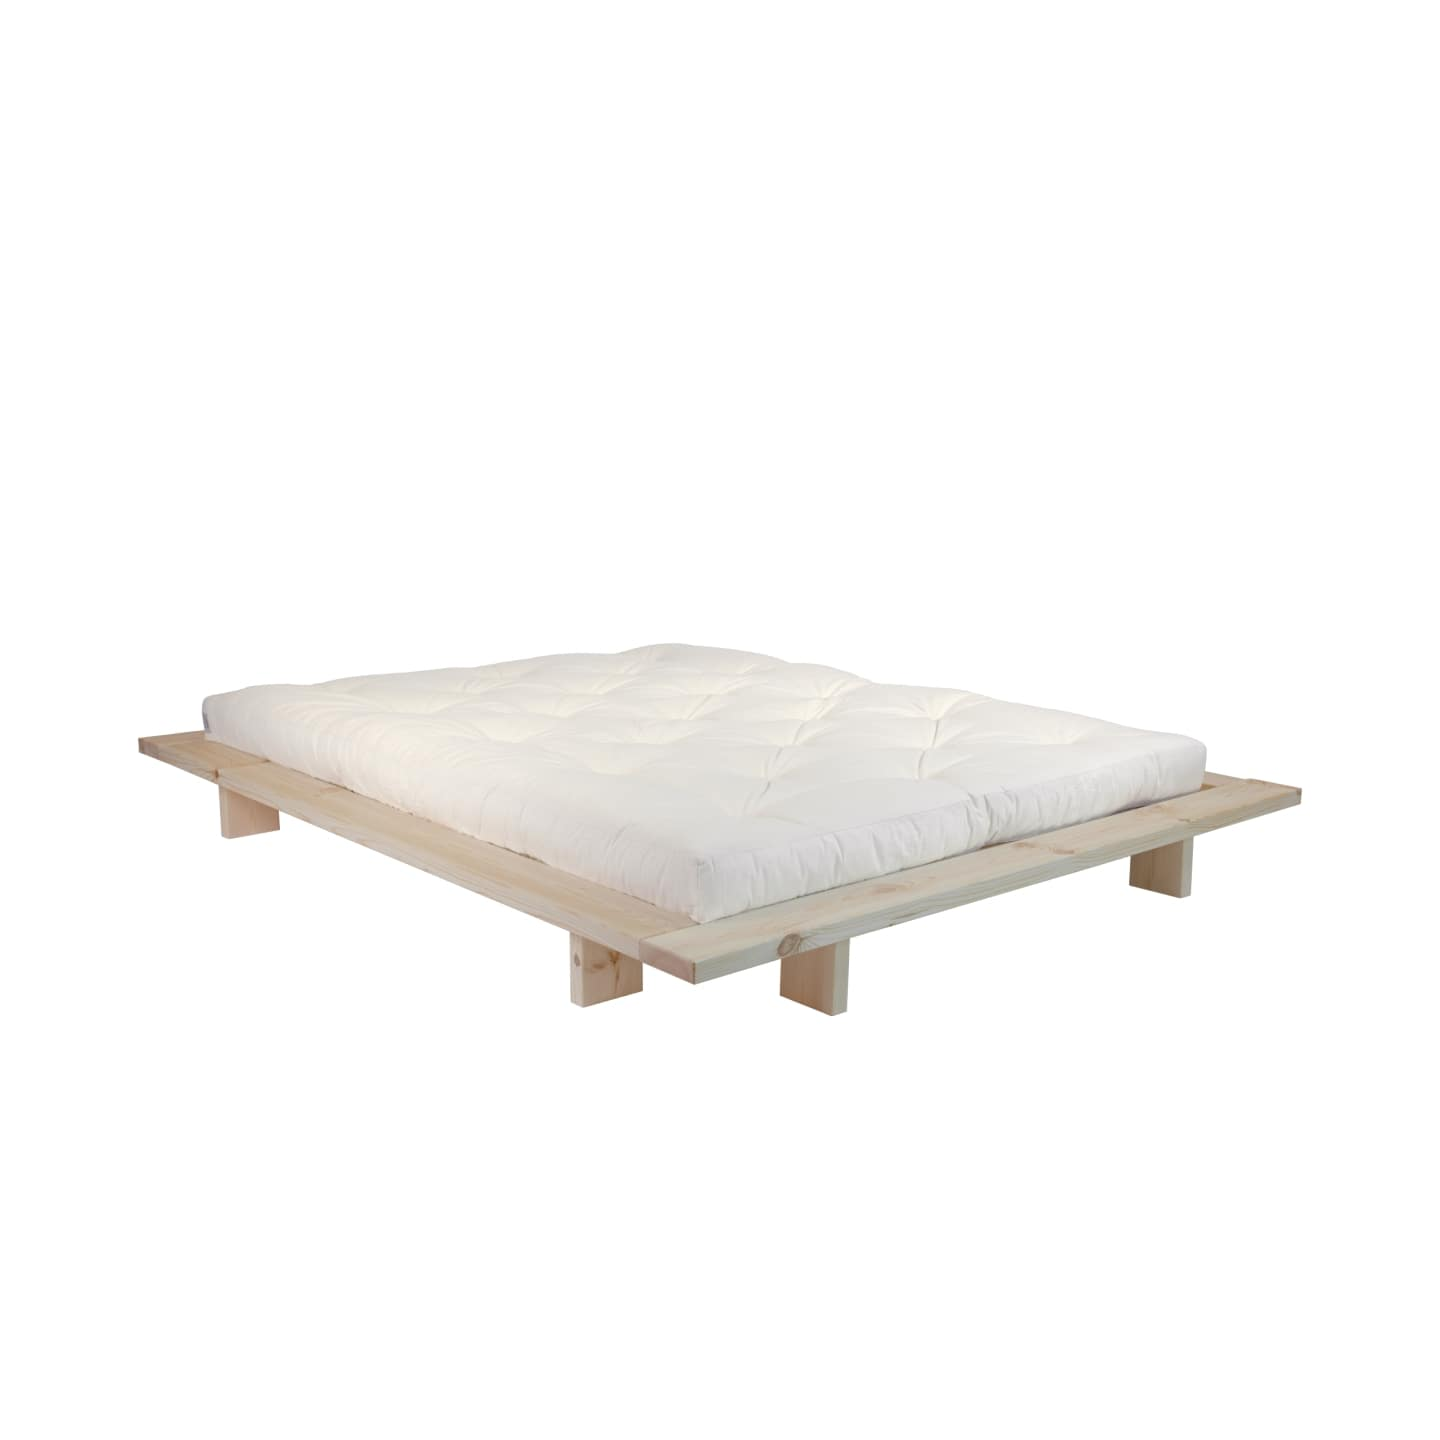 Naam Van Japanse Bedbank.Karup Futonbed Japan Naturel Sasastore Stylish And Space Saving